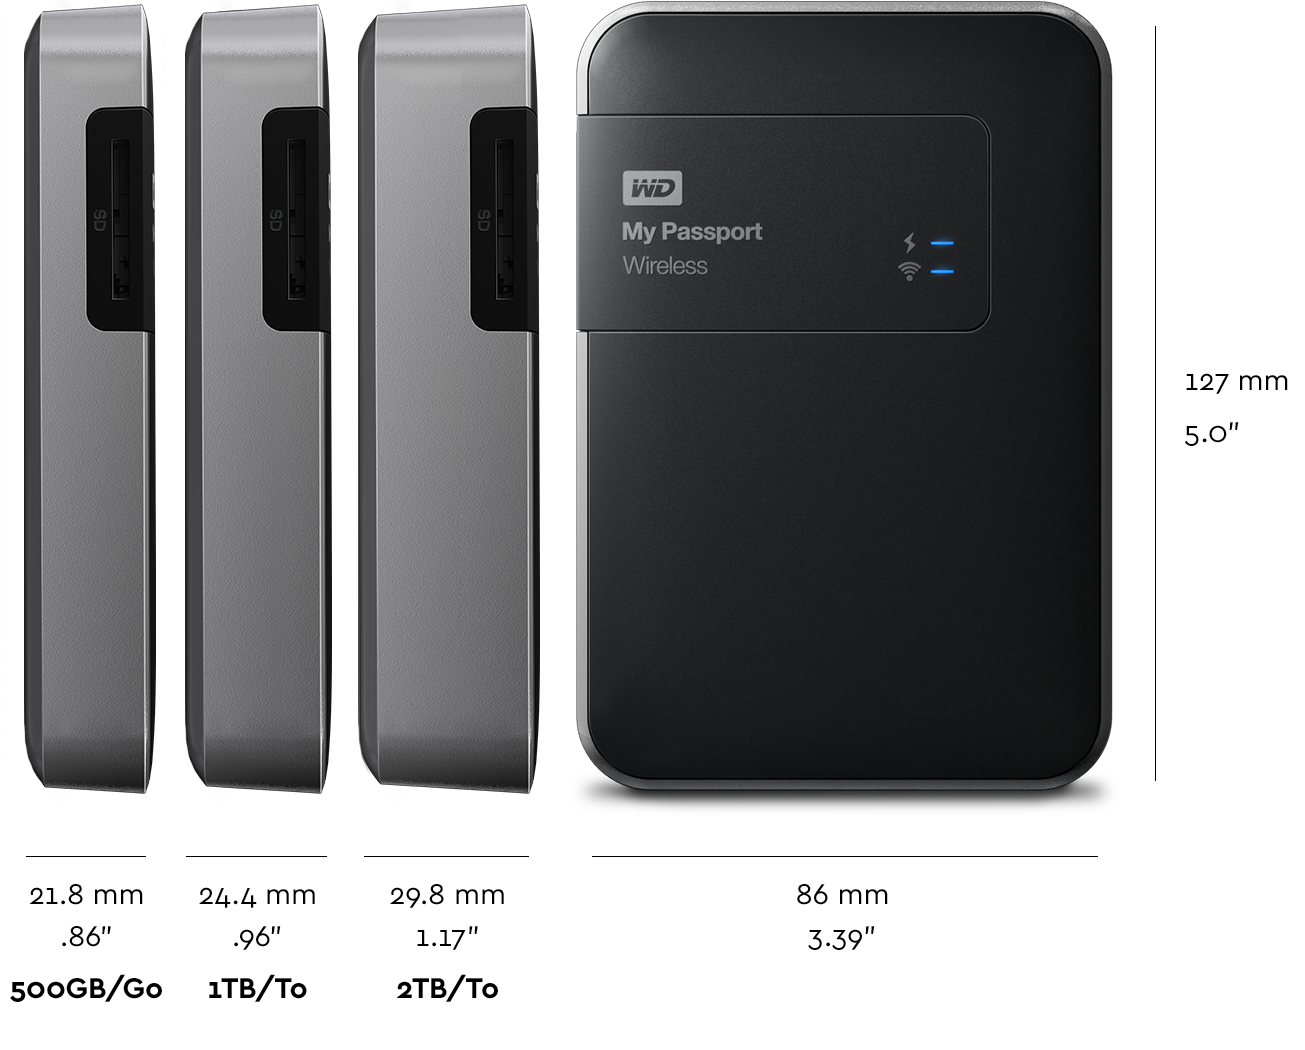 Wd My Passport Wireless 1tb Usb 30 Black External Hard Drive Technical Specifications